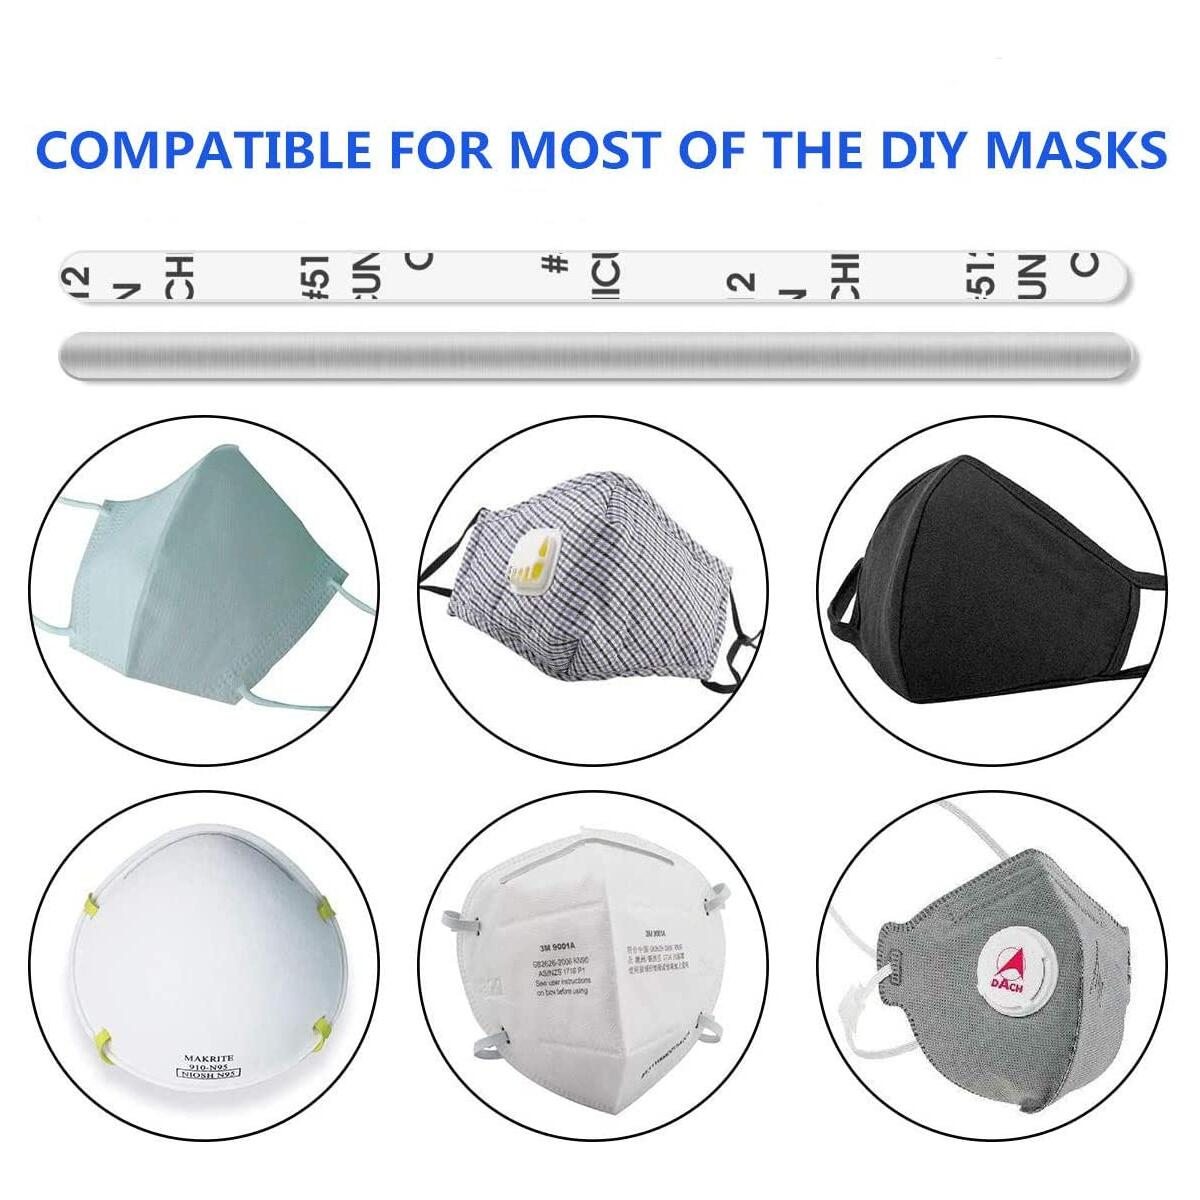 Nose Bridge Strip for Mask, Self Adhesive Aluminum Metal Flat Bar Strip 90MM for Face DIY Making, Adjustable Nose Clips Mask Wire Mouth Cover Making Accessories for Sewing Crafts(100PCS)